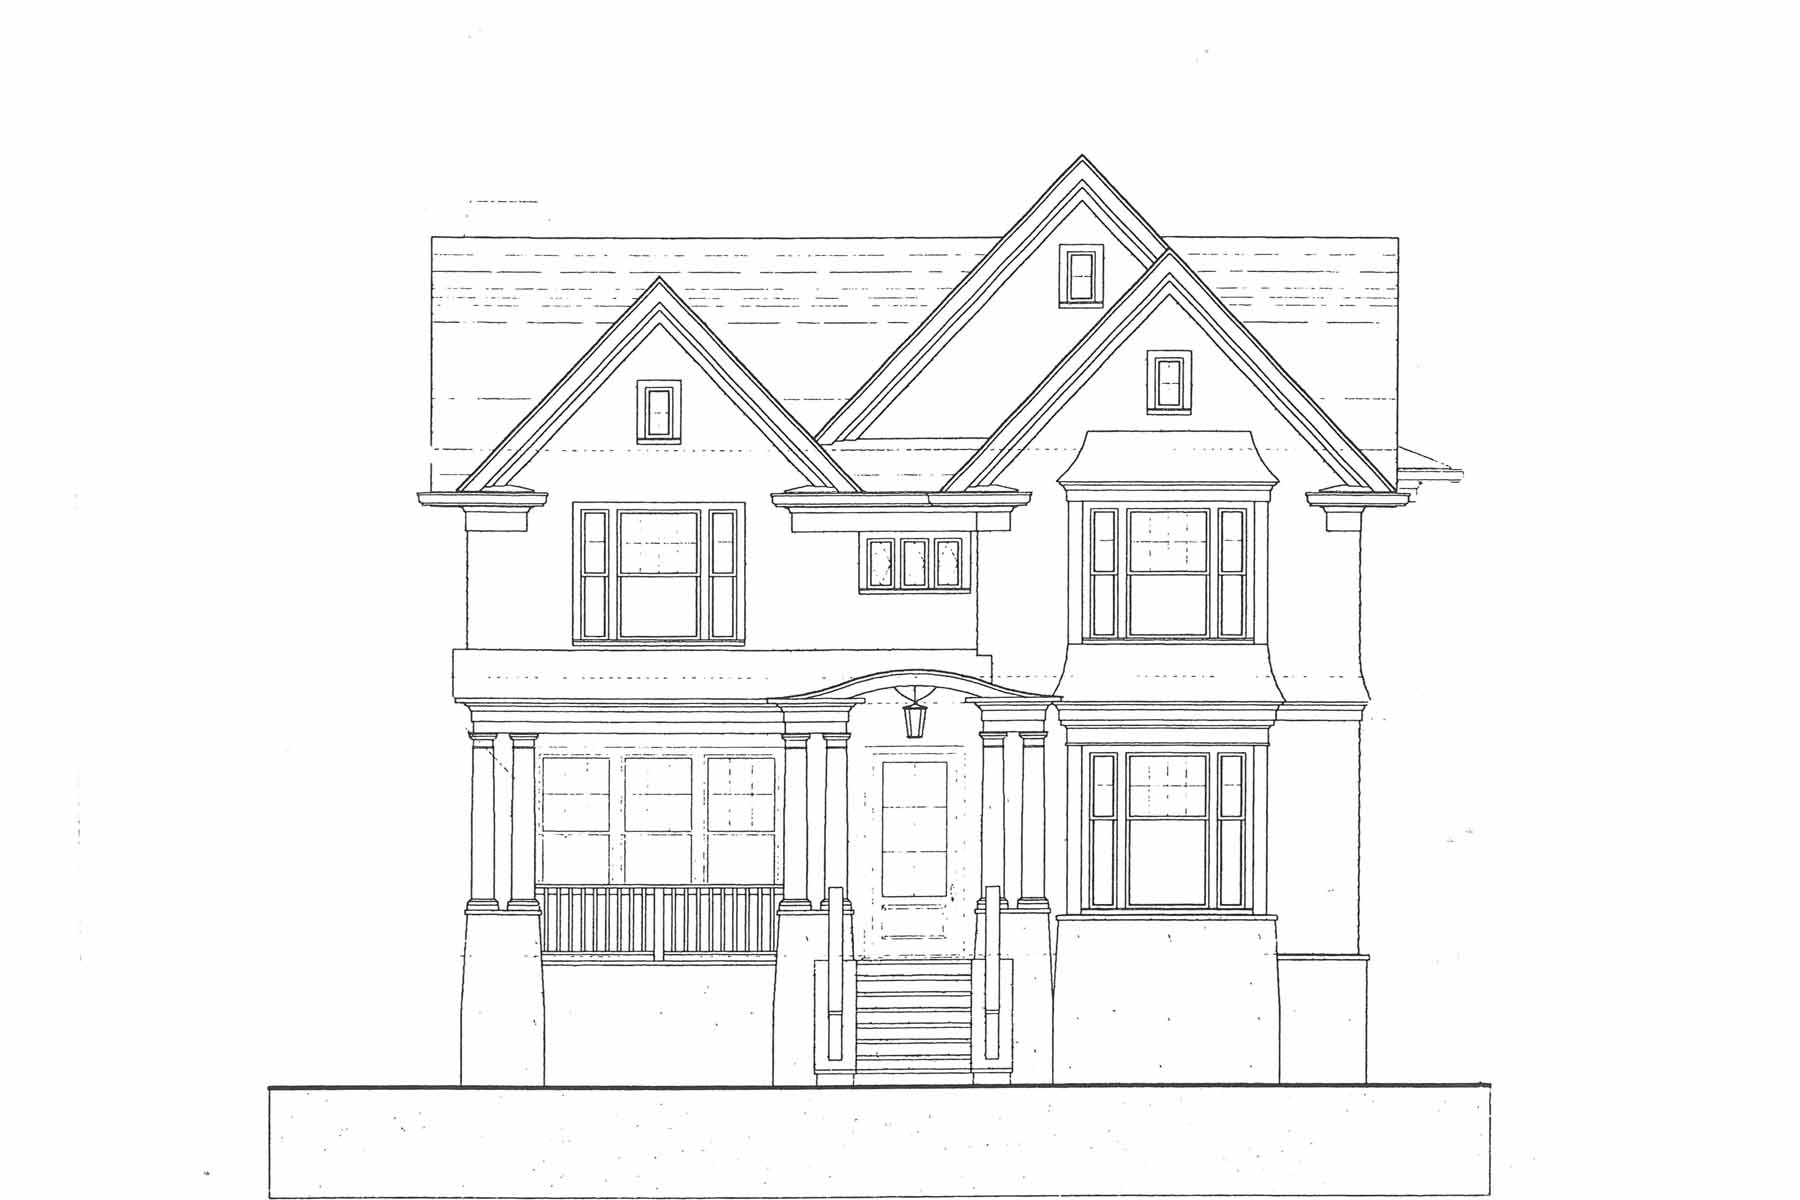 Single Family Home for Sale at New construction by JackBilt Homes in the Garden Hills area of Buckhead! 331 Peachtree Avenue NE Atlanta, Georgia, 30305 United States